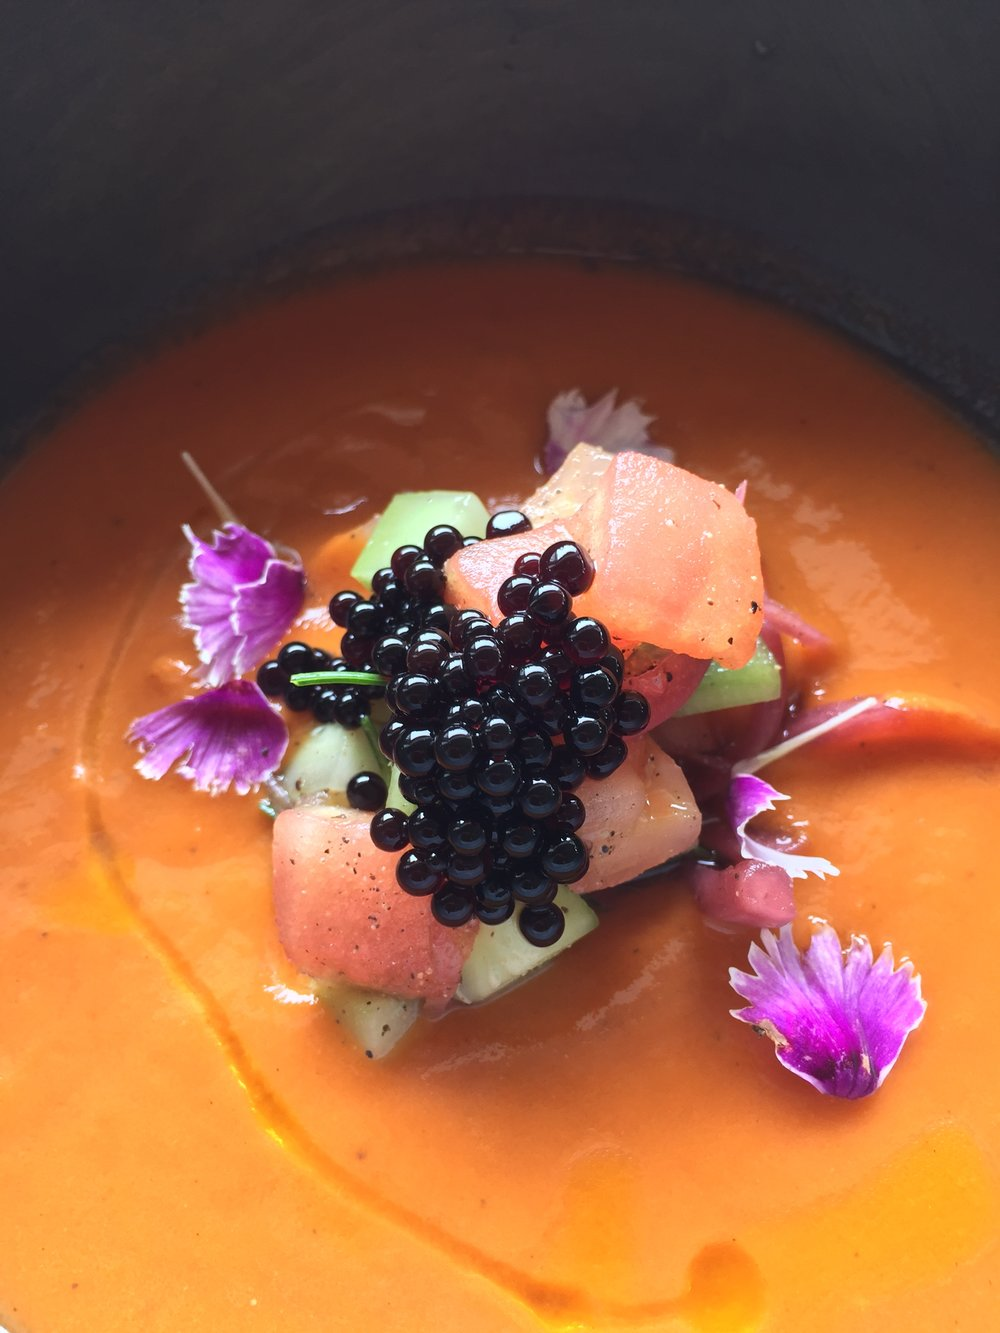 Amatara's incredible gazpacho soup decorated with balsamic vinegar balls - no deprivation here!